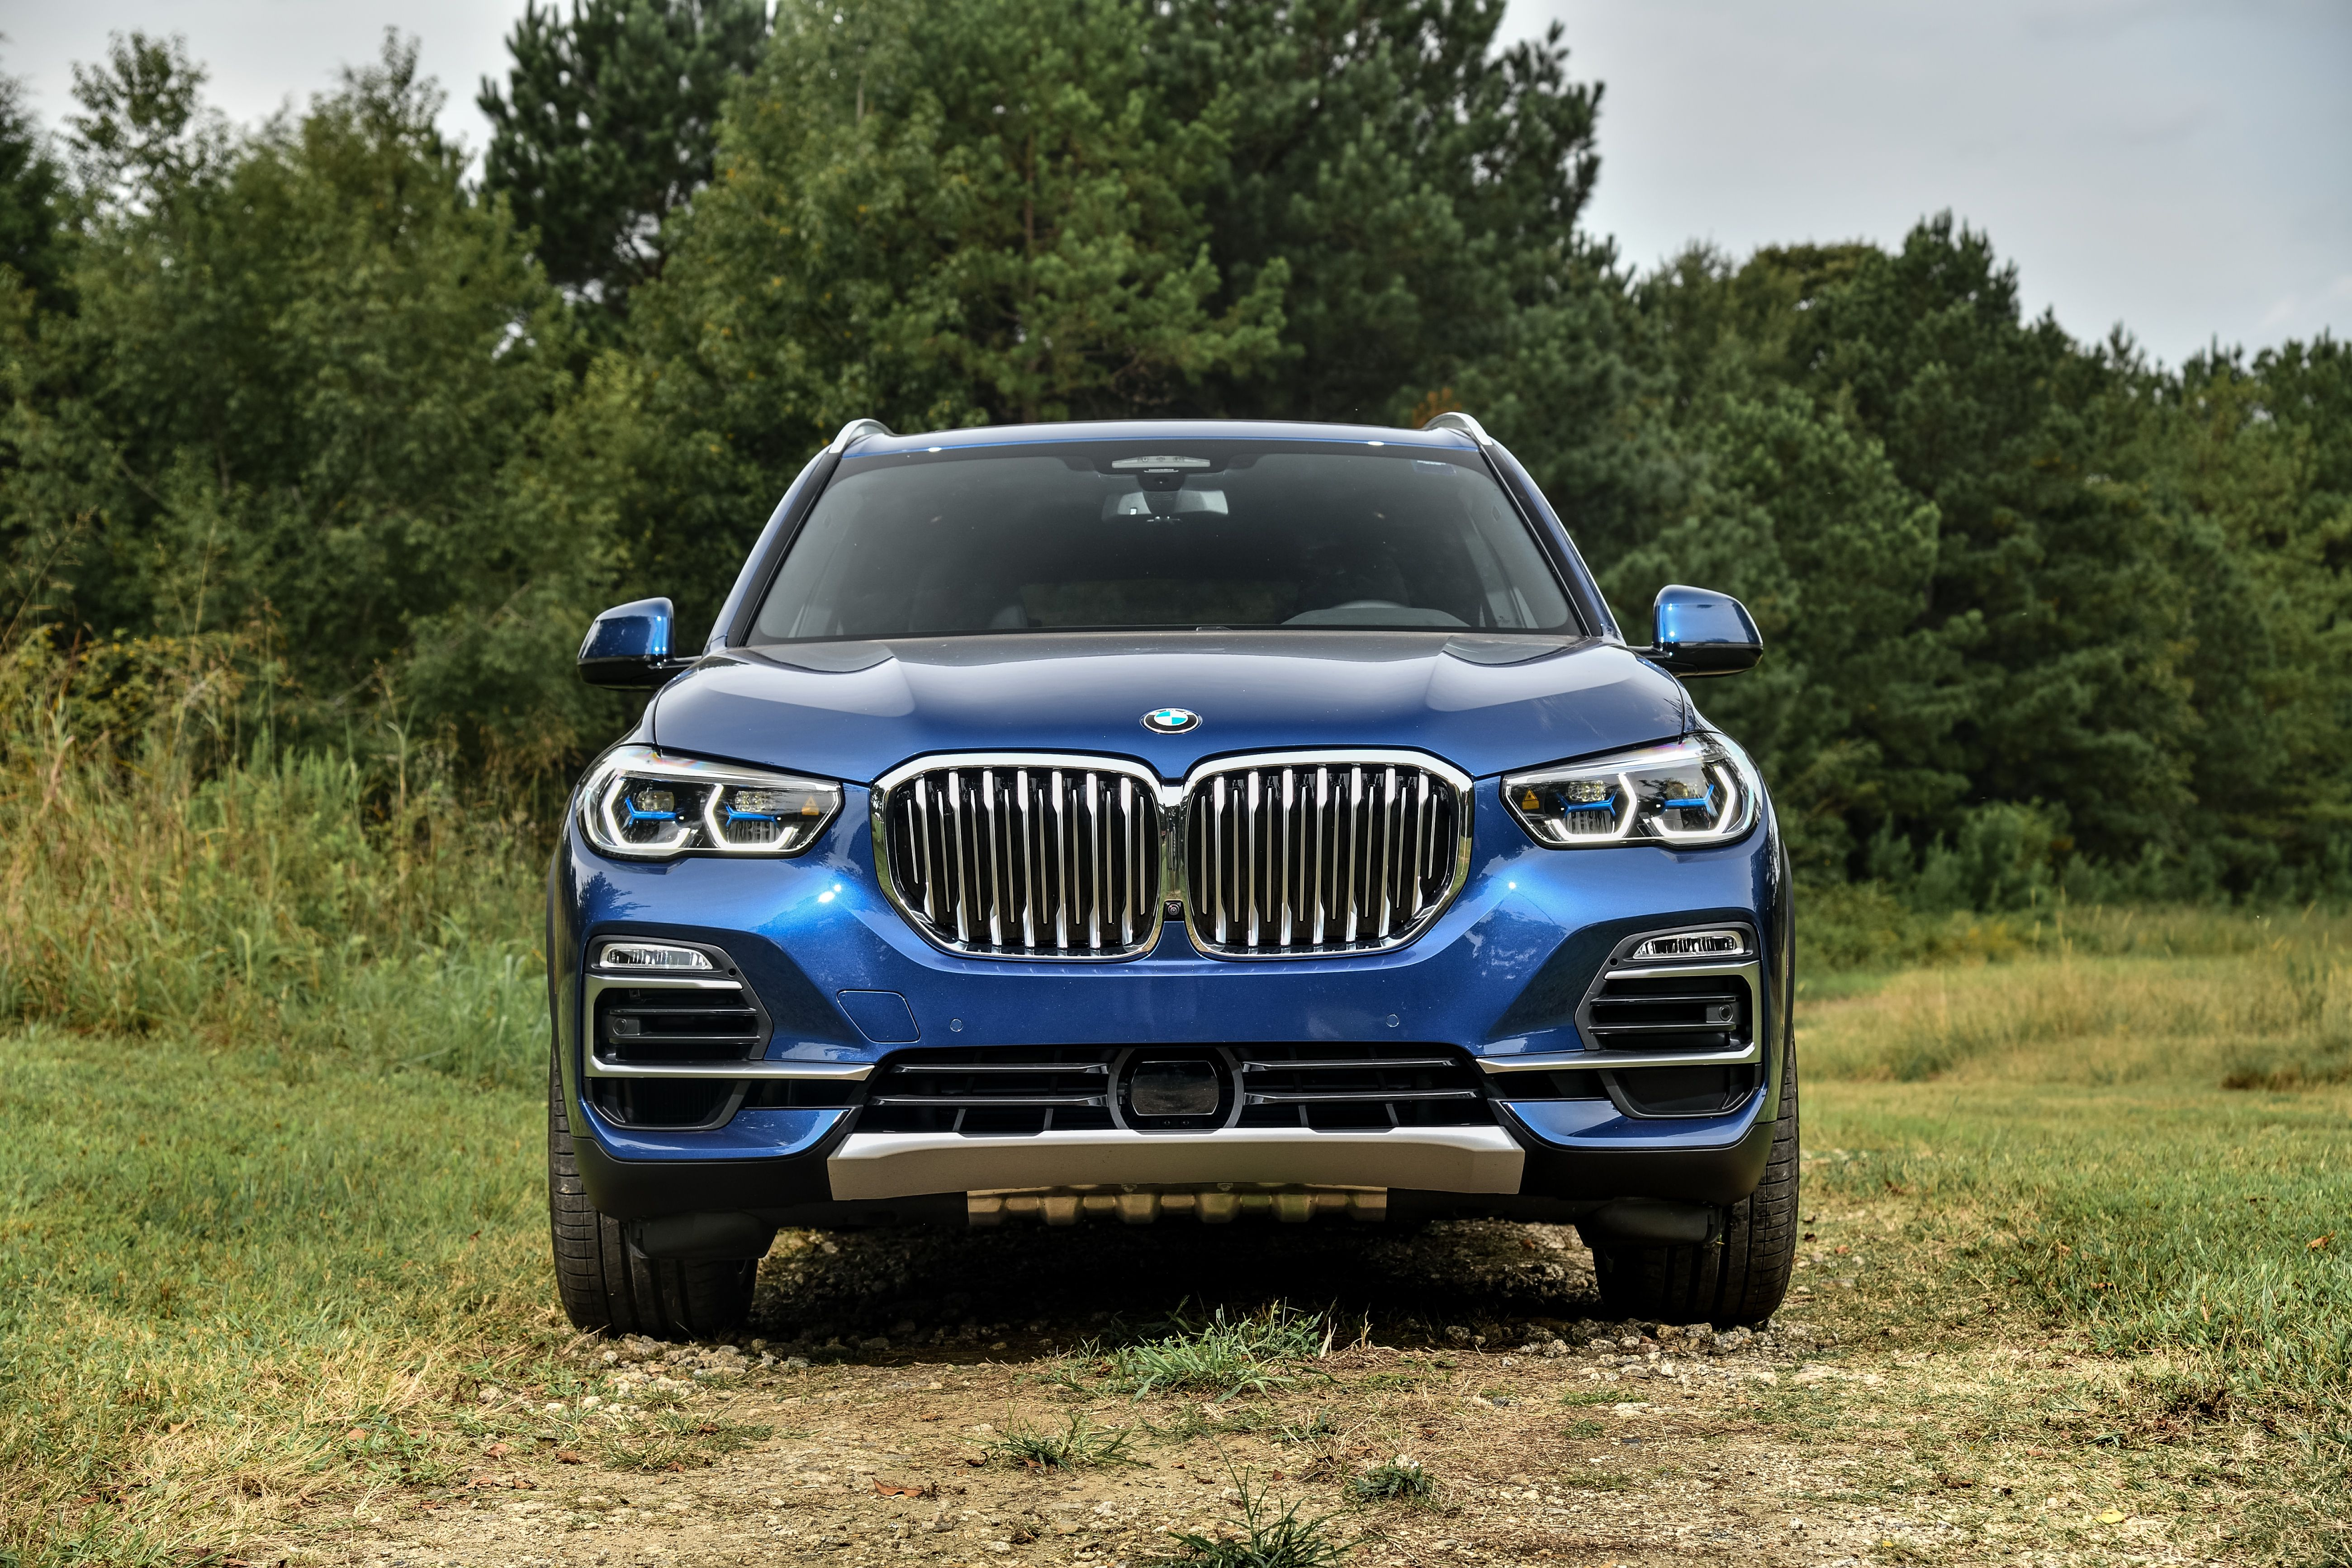 Pin By Joseph Gaouette On Style In 2020 Bmw Bmw X5 Luxury Car Brands